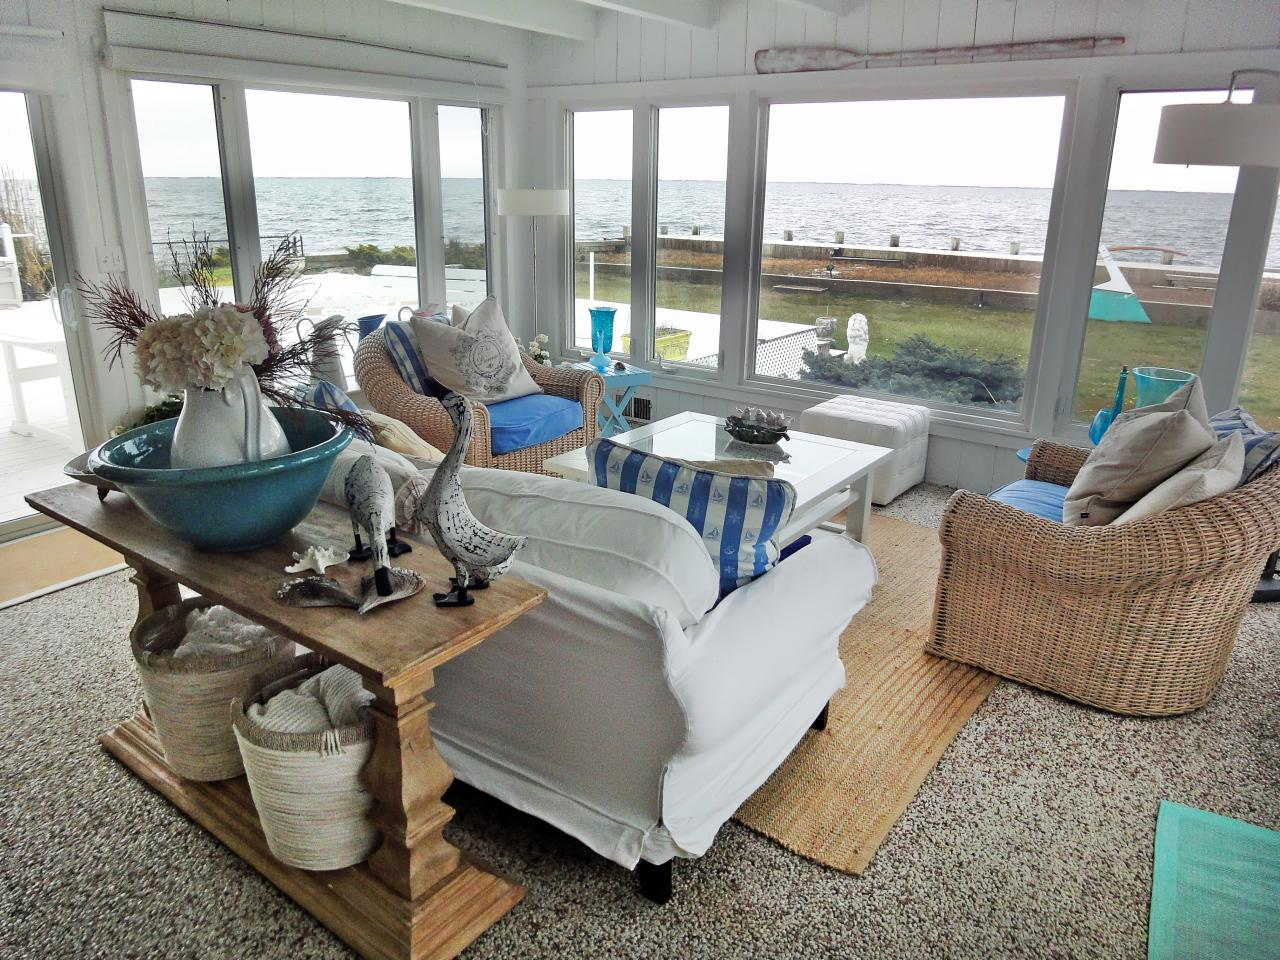 Coastal decorating ideas beachfront bargain hunt hgtv for Beach decor ideas living room